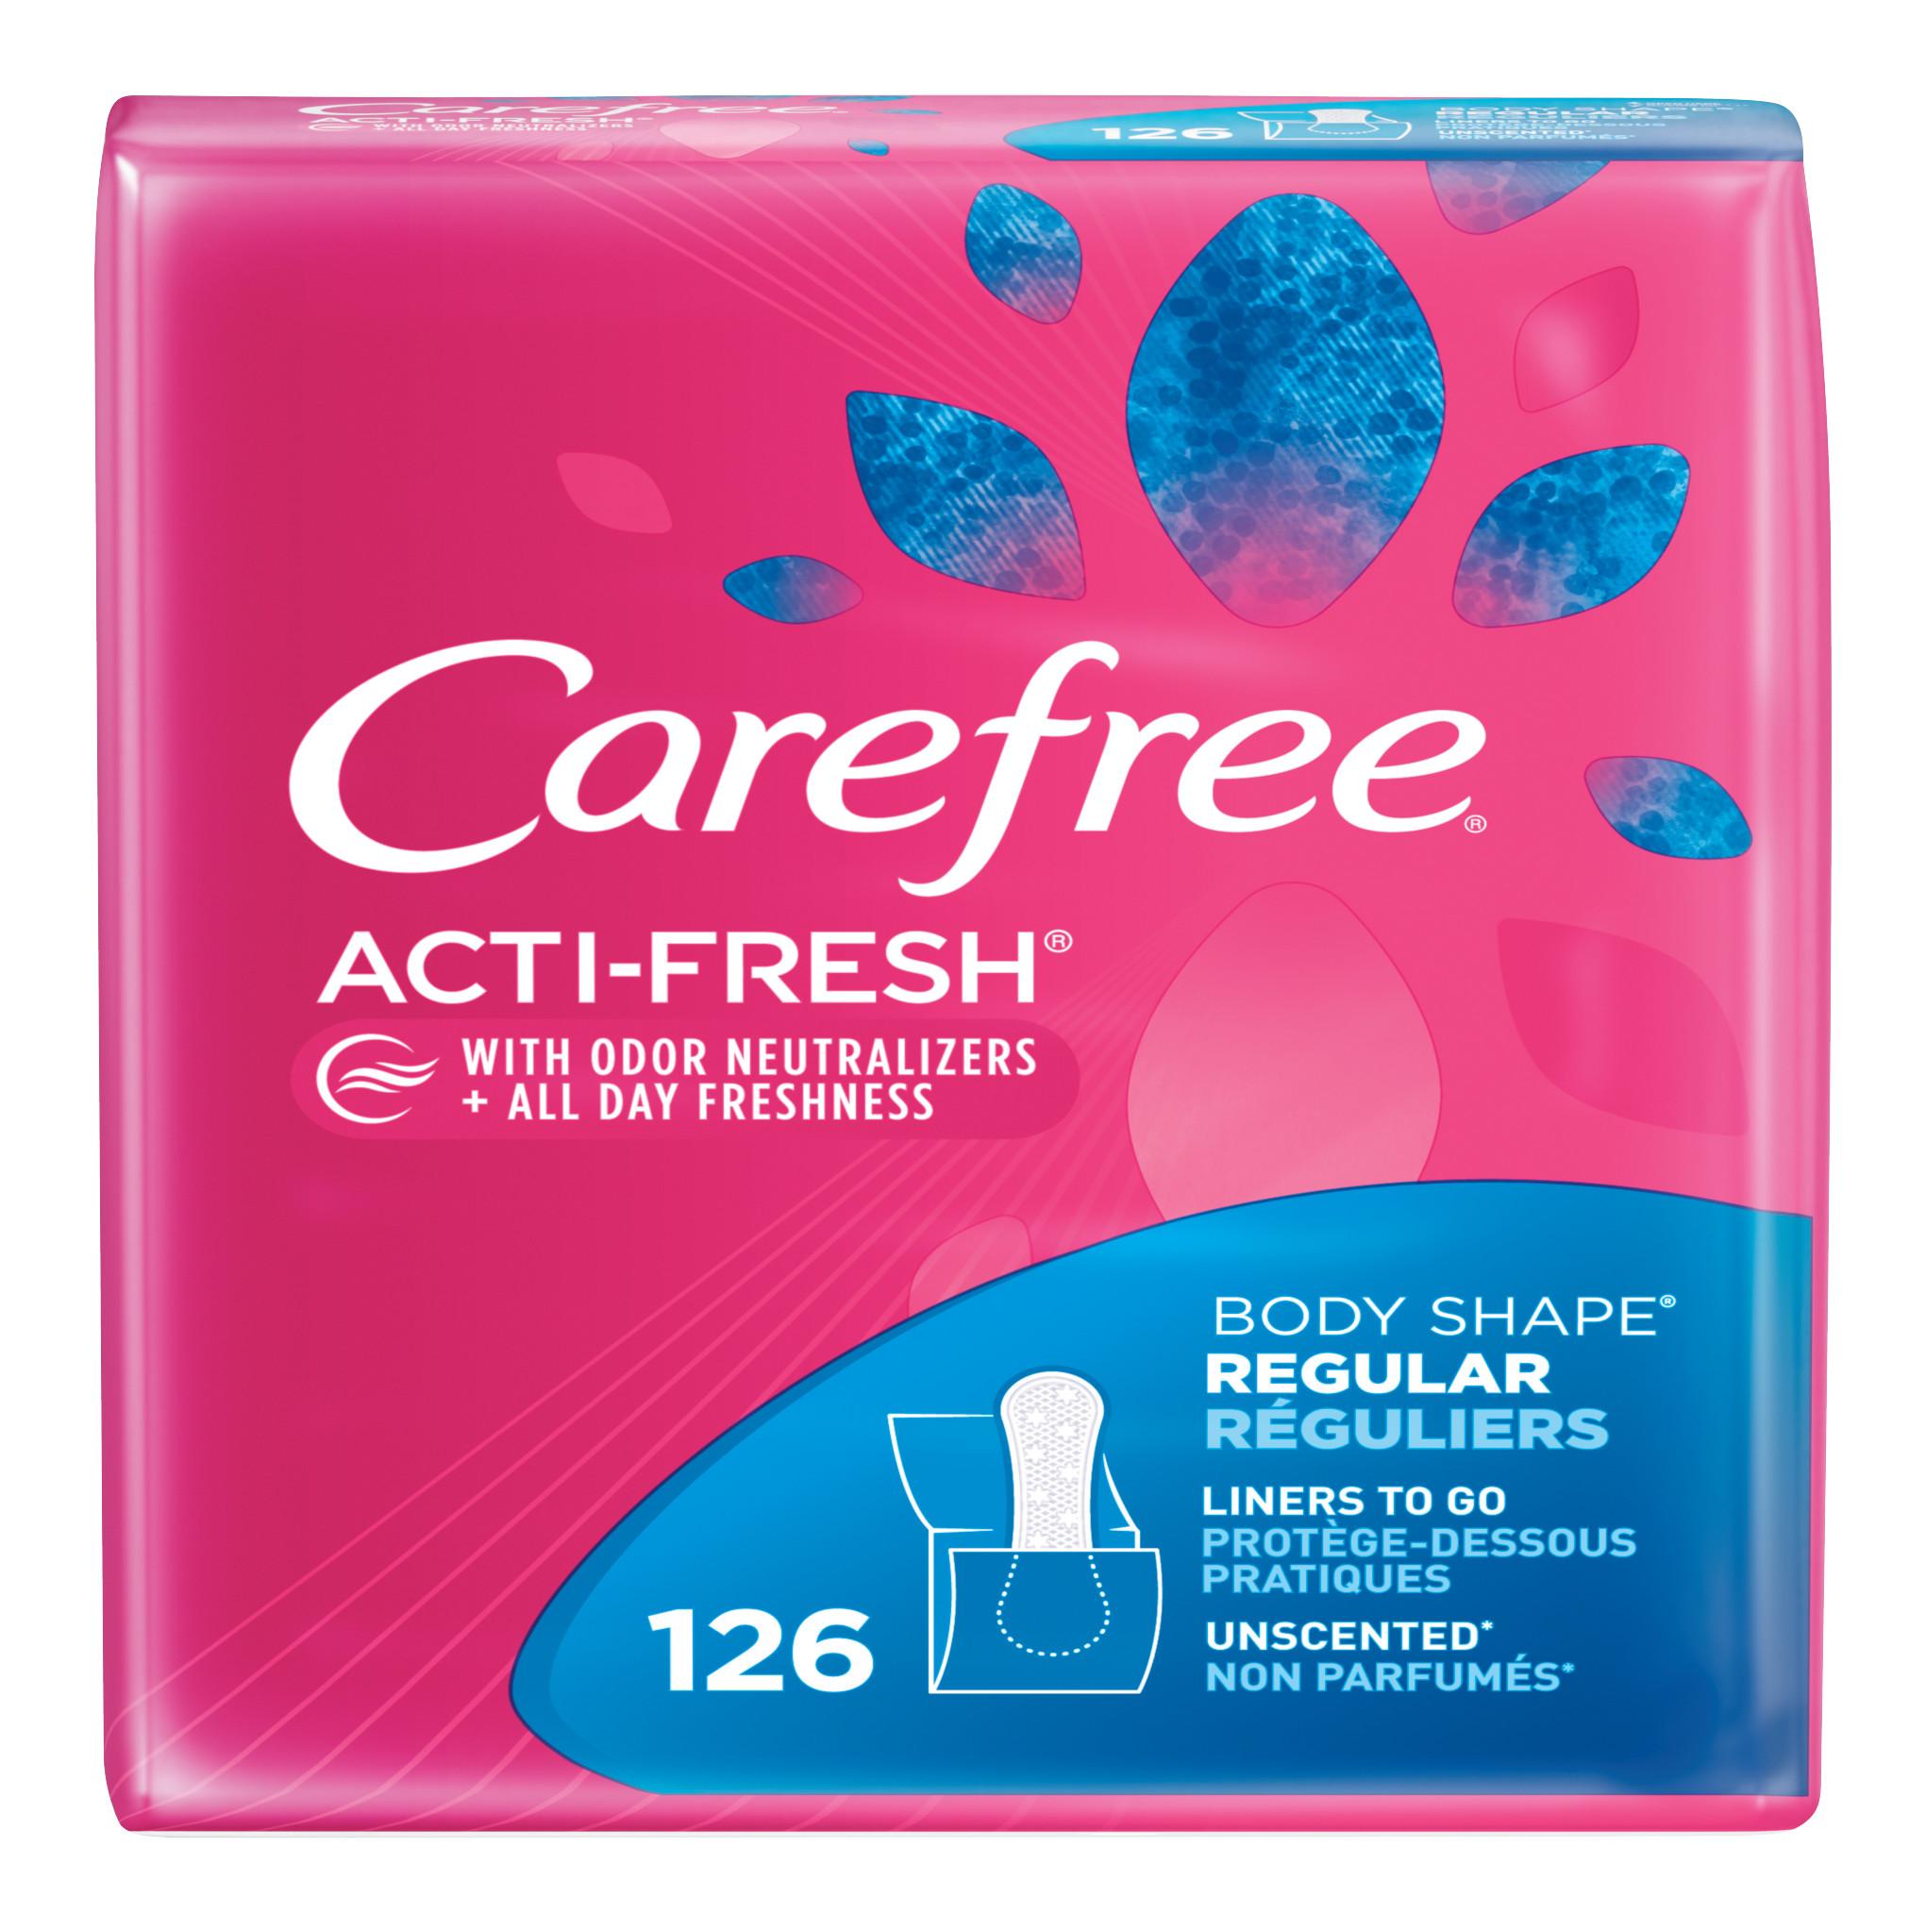 Carefree Acti-Fresh Body Shaped Pantiliners, Unscented, Regular Length, 20ct